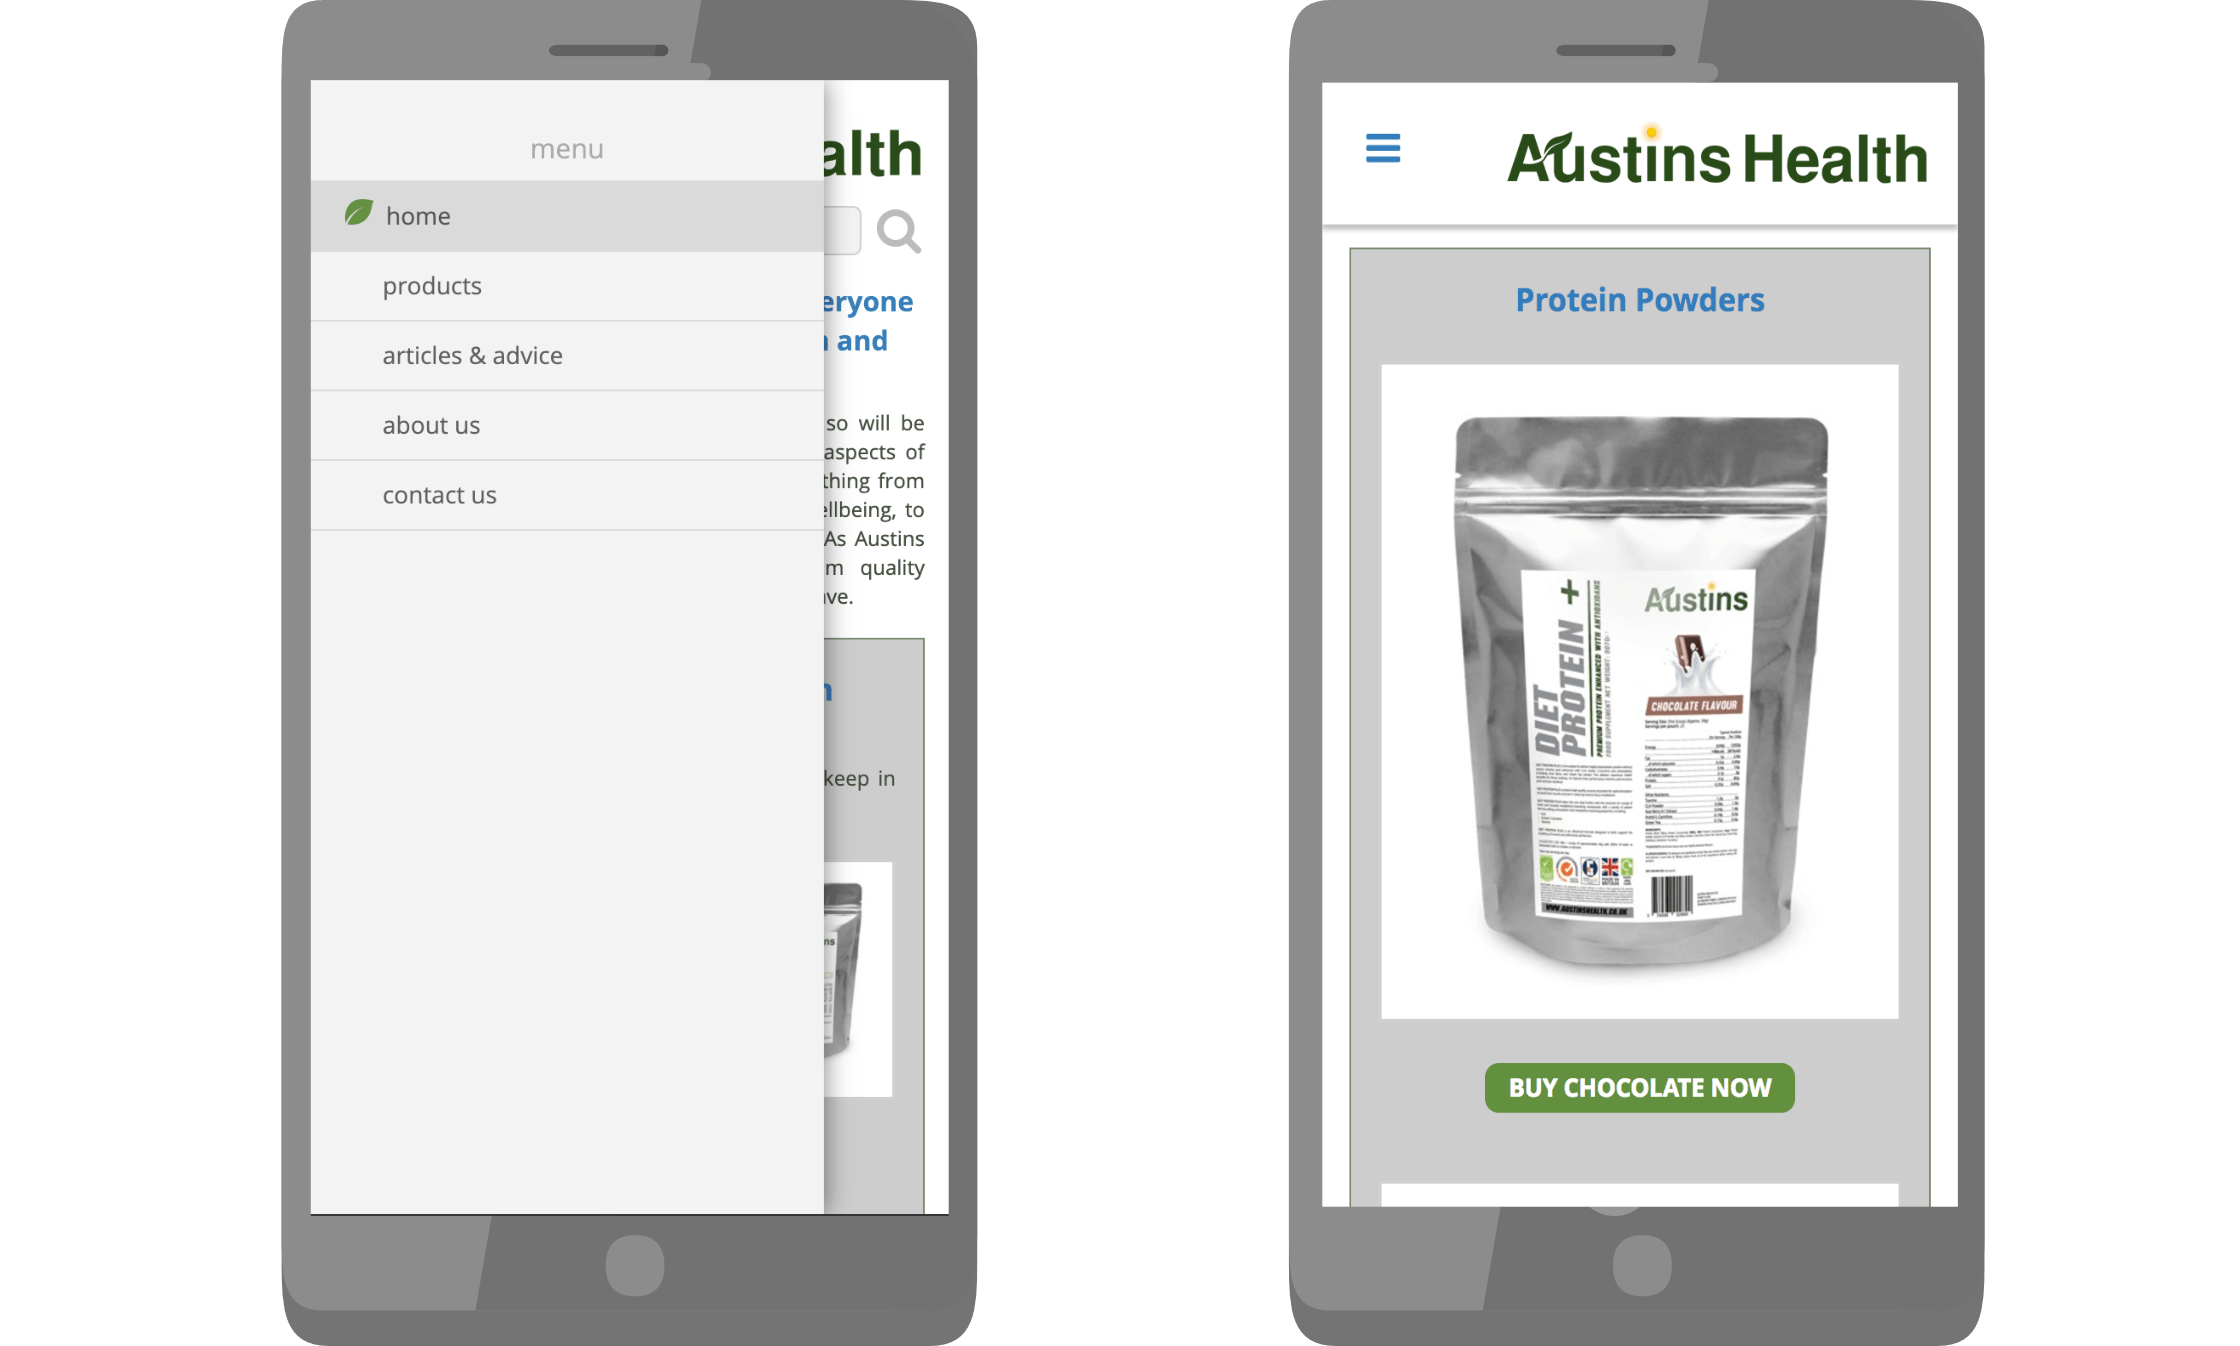 Austins health website viewed on a smart phone